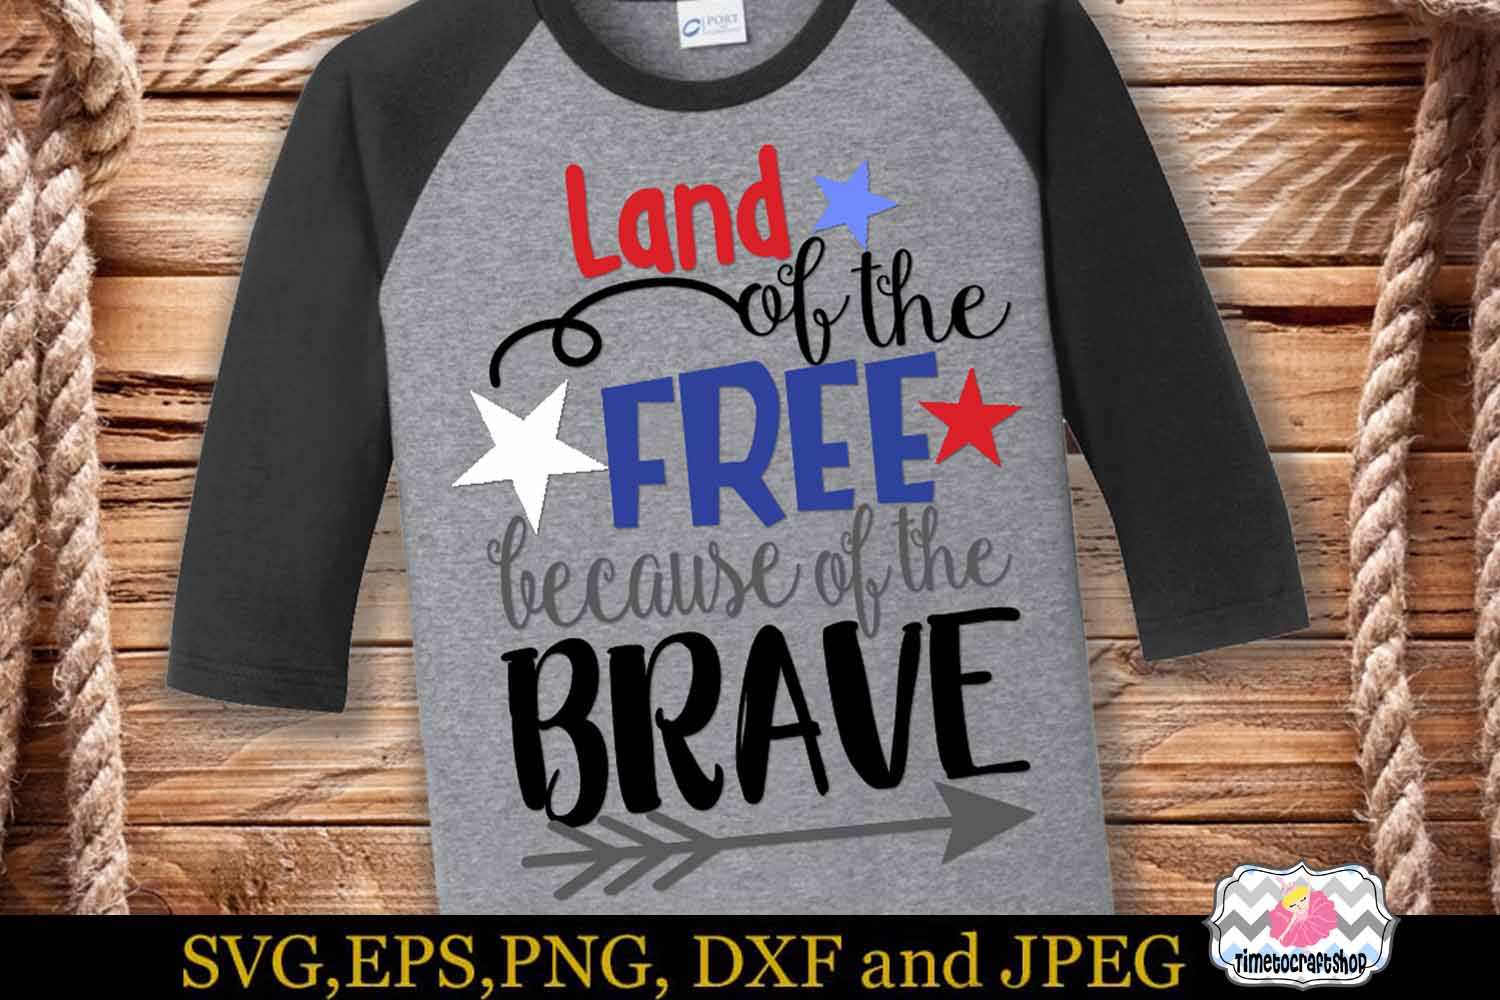 SVG EPS JPG DXF PNG Land of the Free because of the brave example image 1